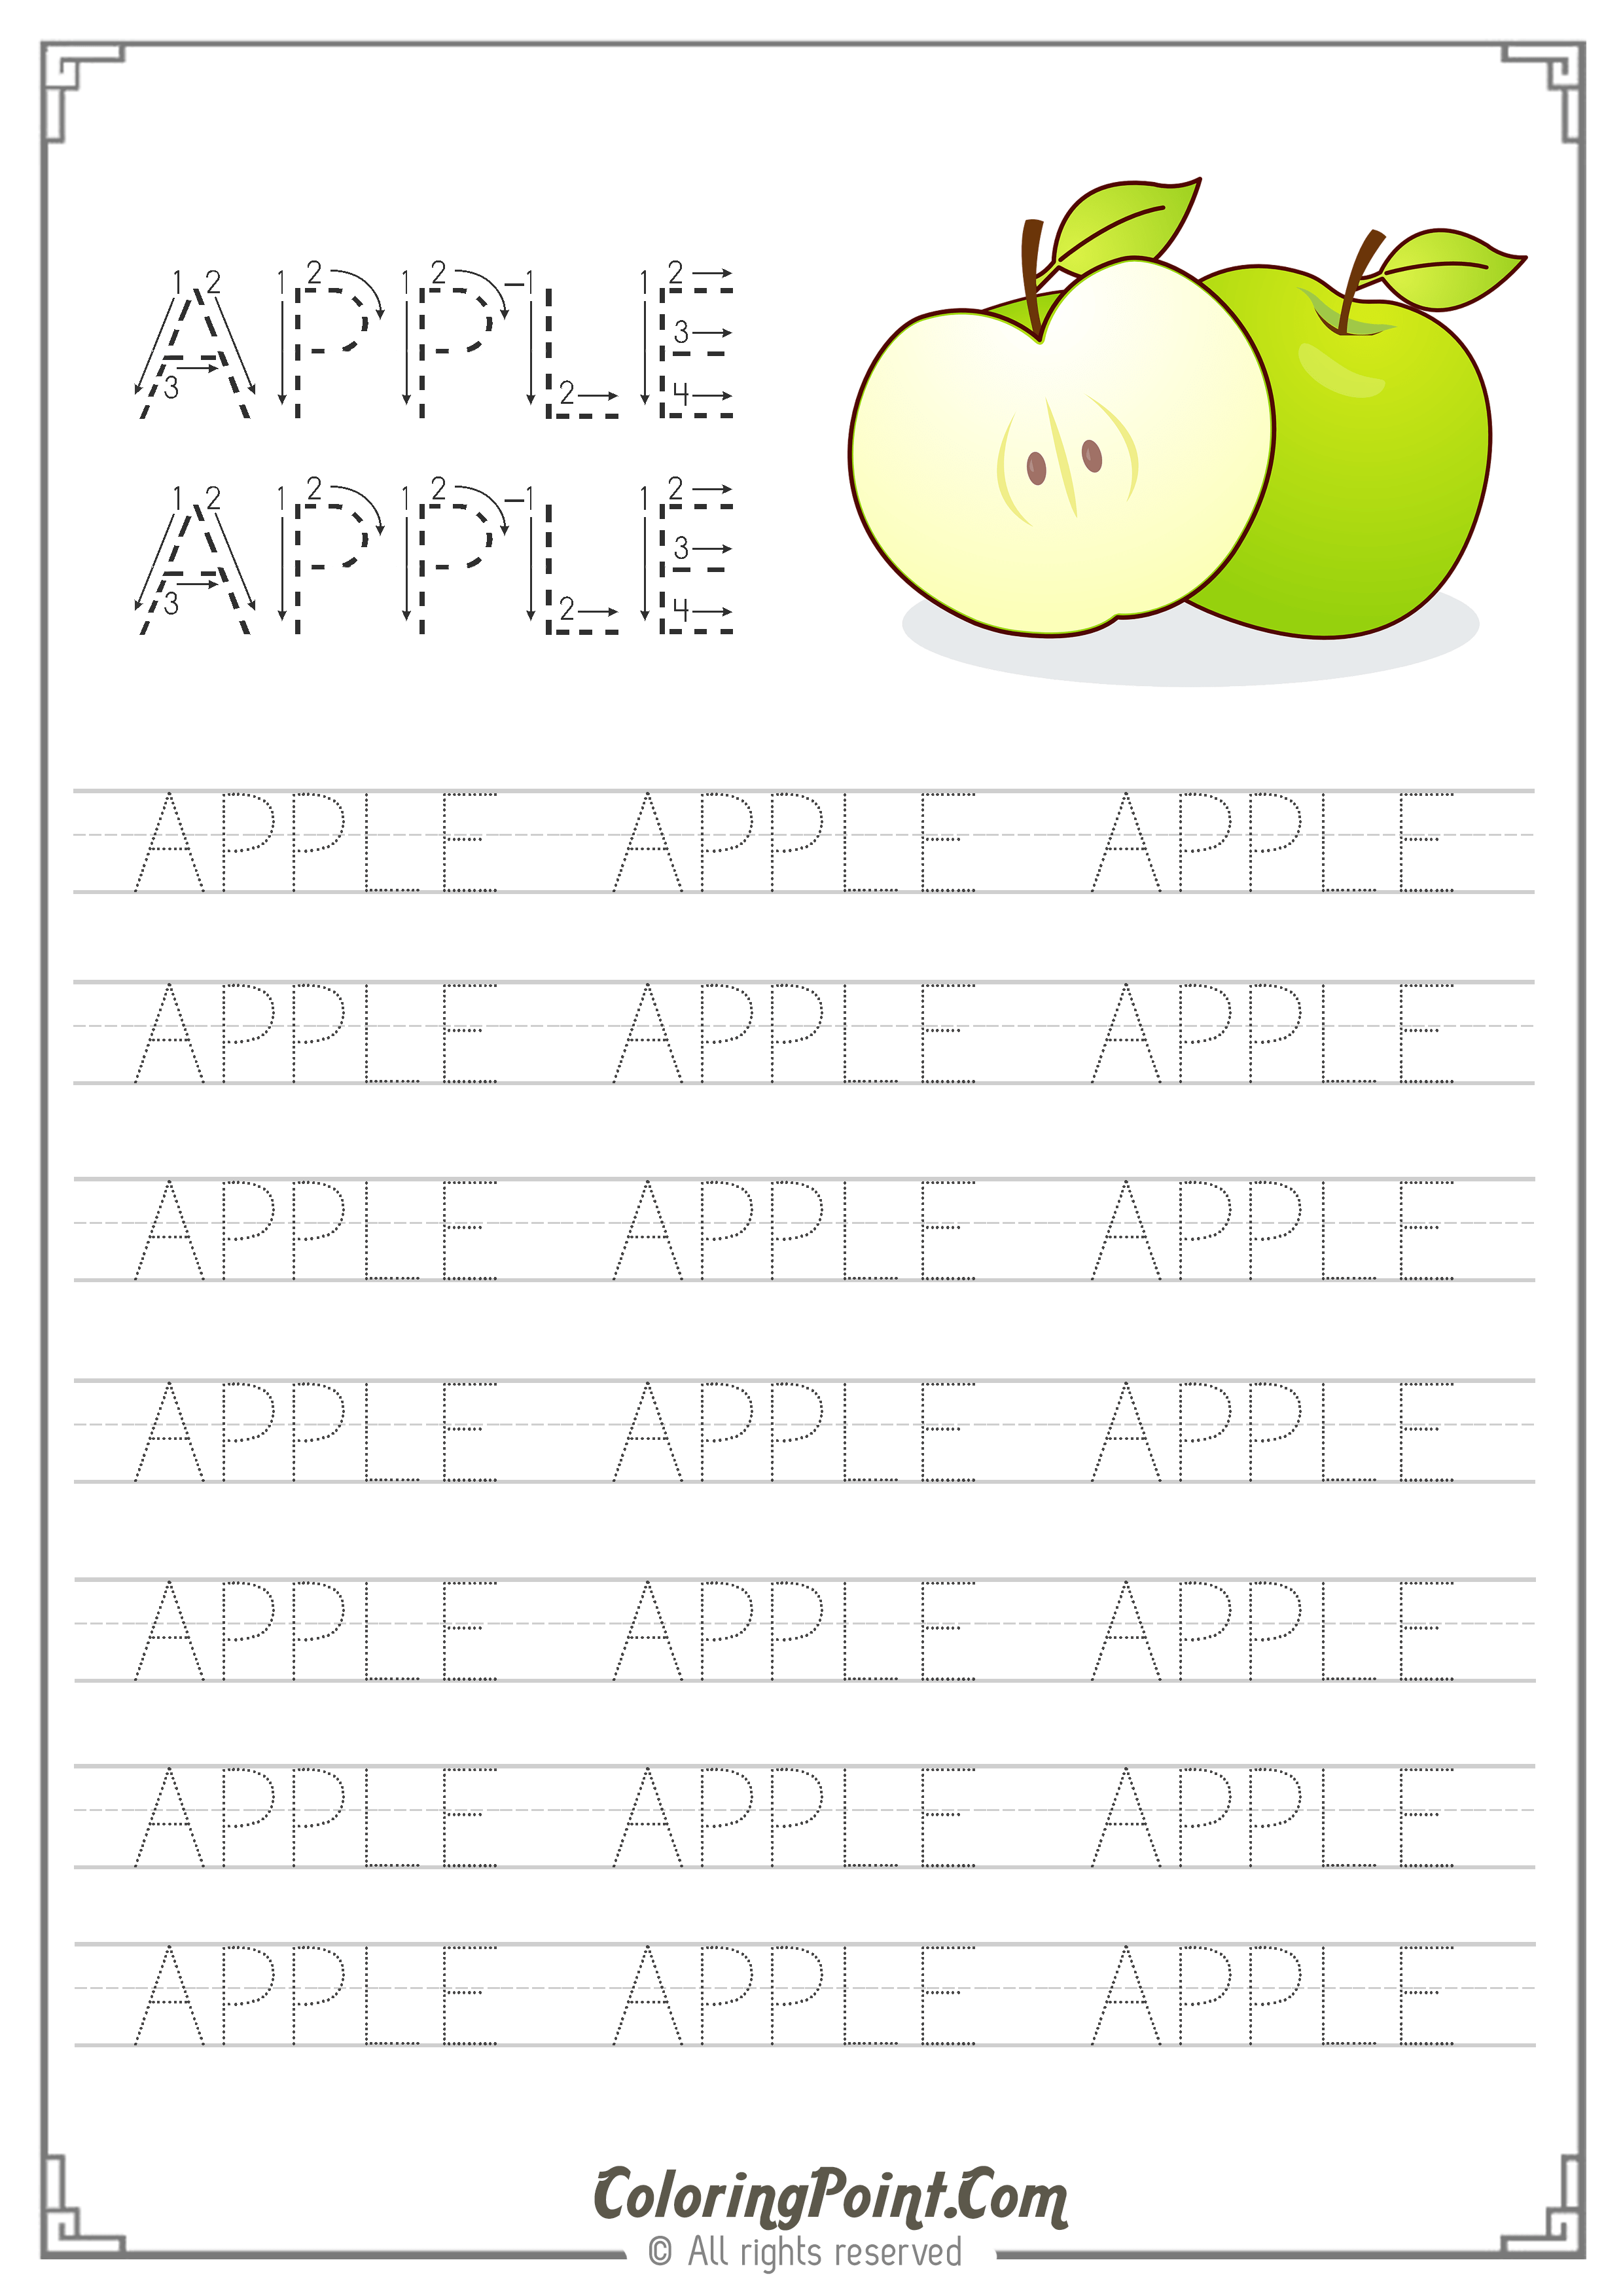 Free Printable Worksheets Ready To Print A4 Paper Size On